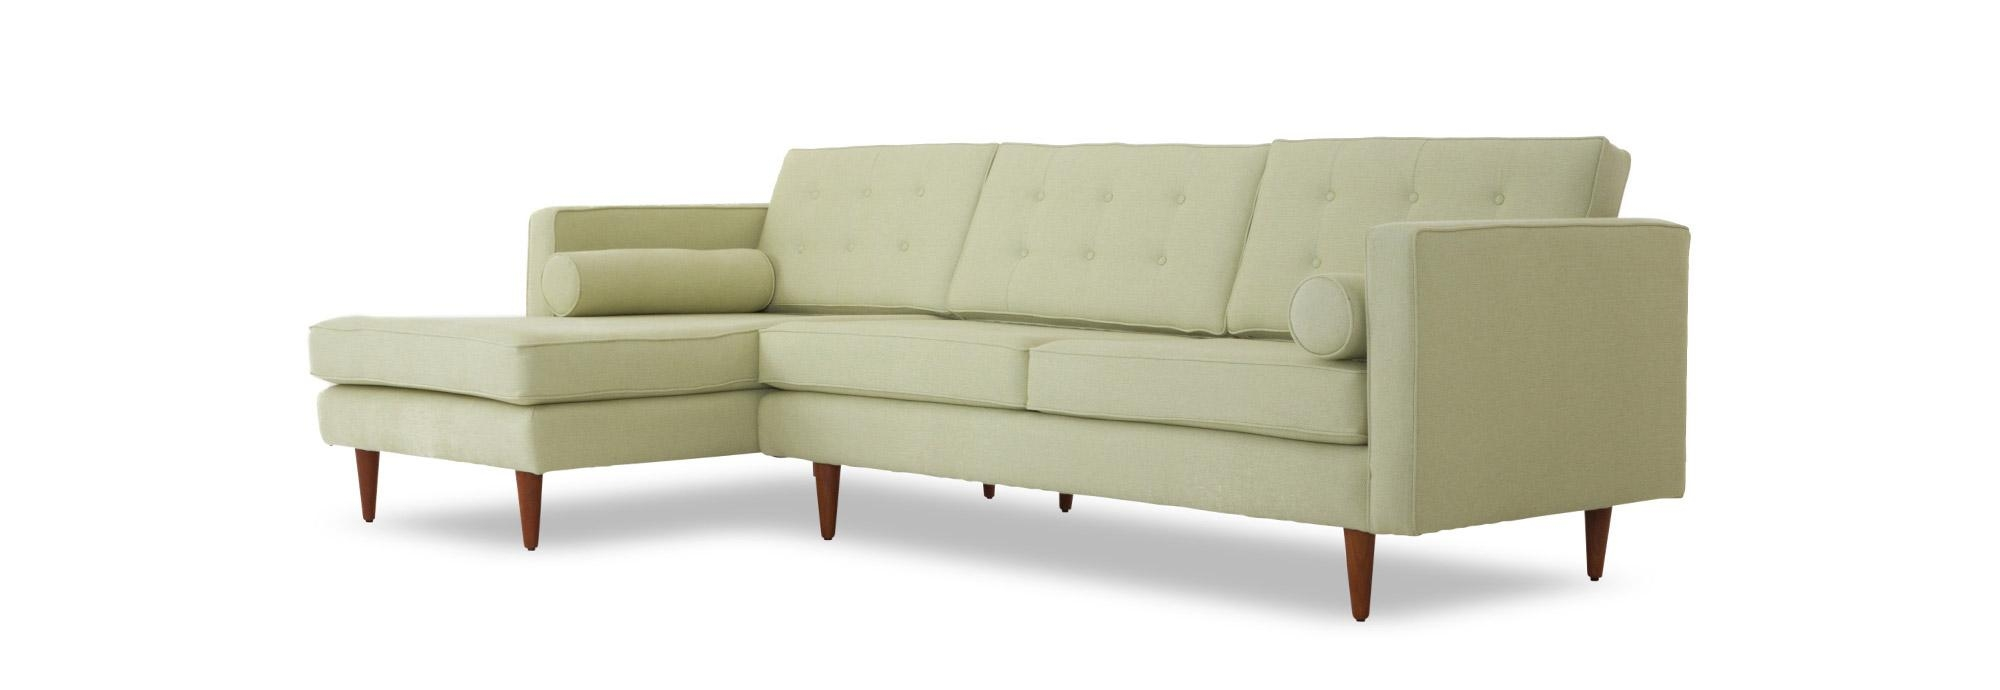 Braxton Sectional | Joybird Intended For Braxton Sectional Sofa (View 3 of 15)